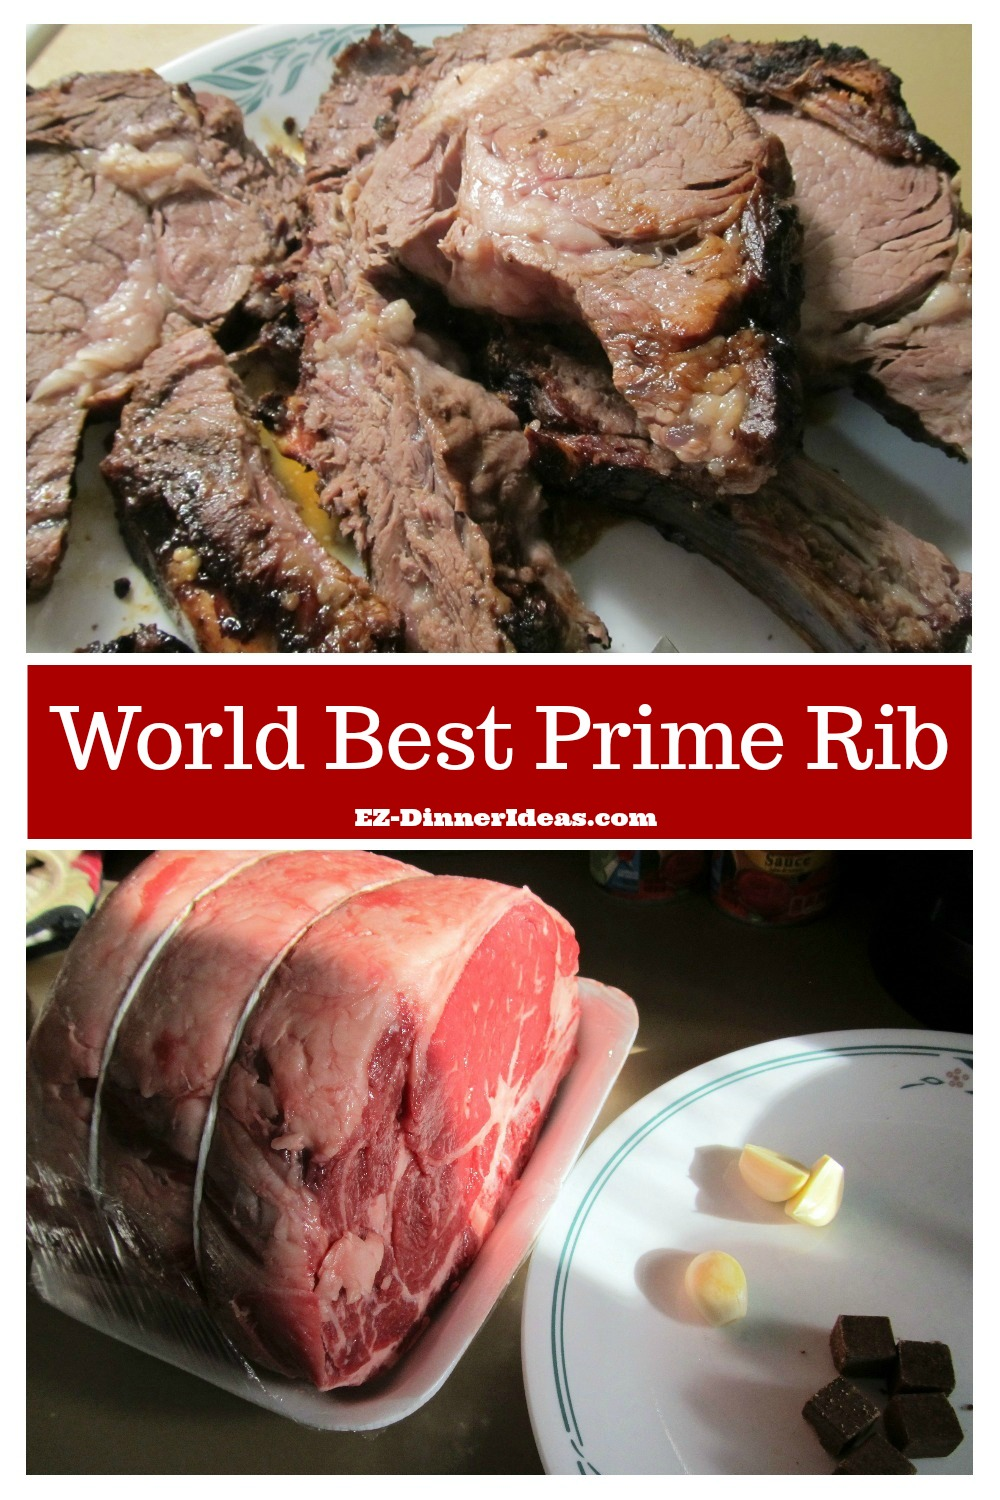 This prime rib dinner menu is the BEST you have ever had.  No prime rib from any restaurant can beat this recipe.